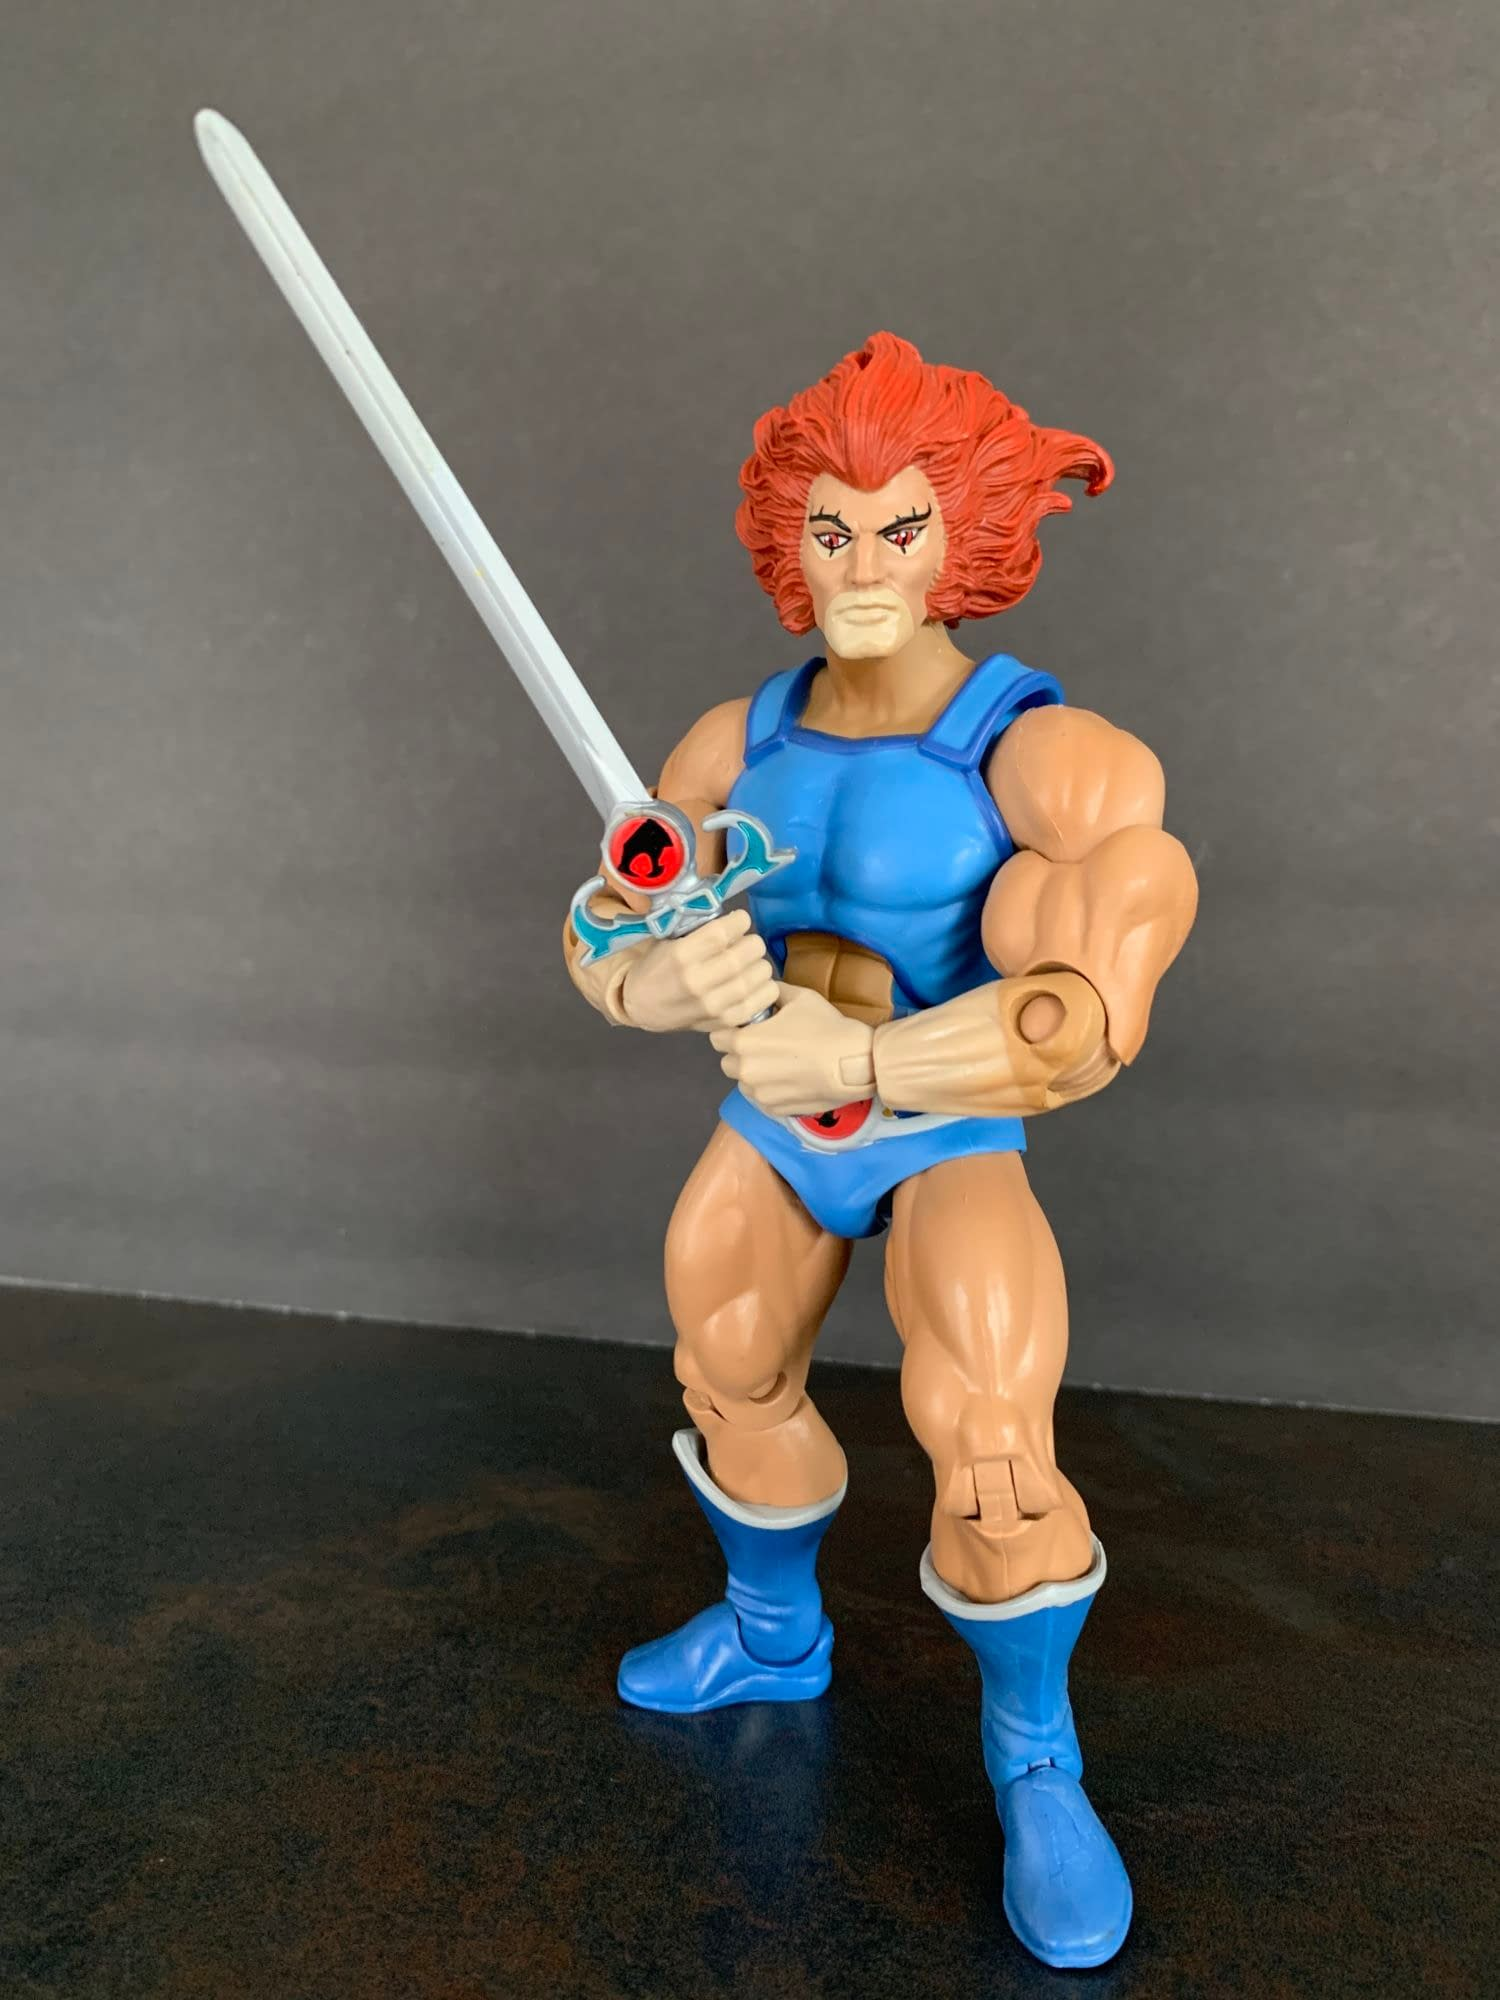 Thundercats Ultimates By Super7: Let's Look At Lion-O